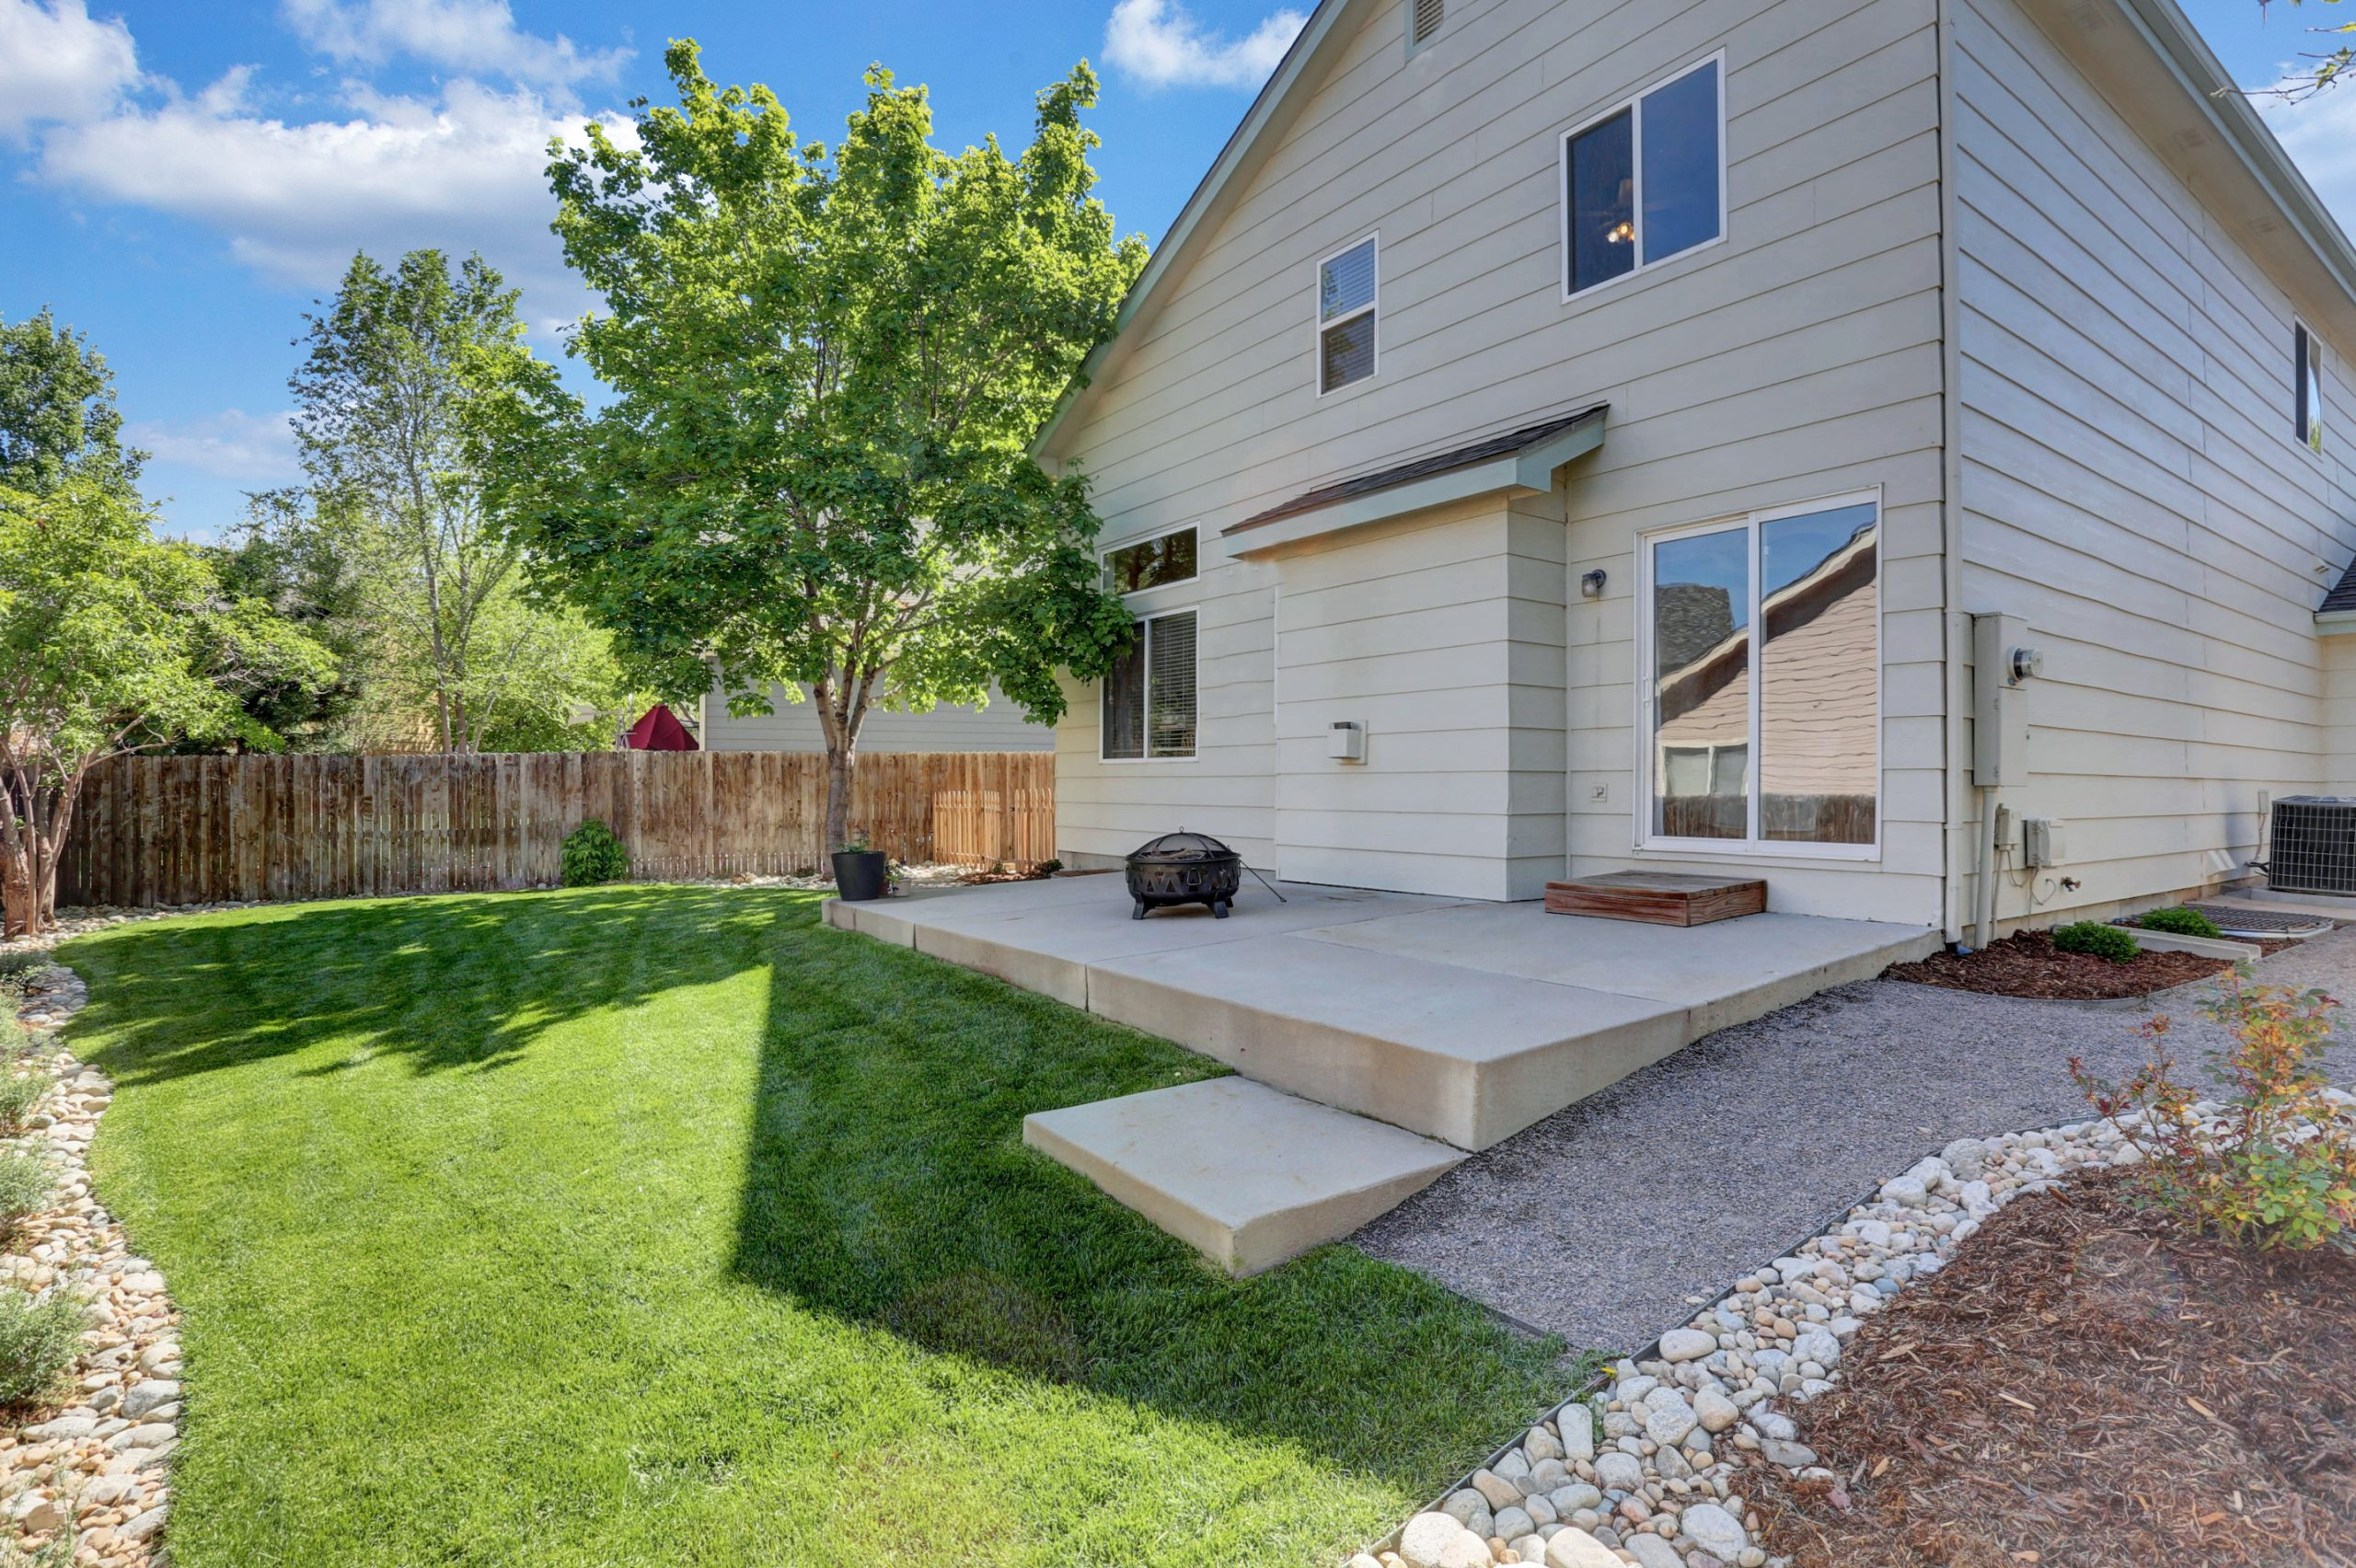 REAL ESTATE LISTING: 10502 Falcon St Firestone Back Porch and Yard